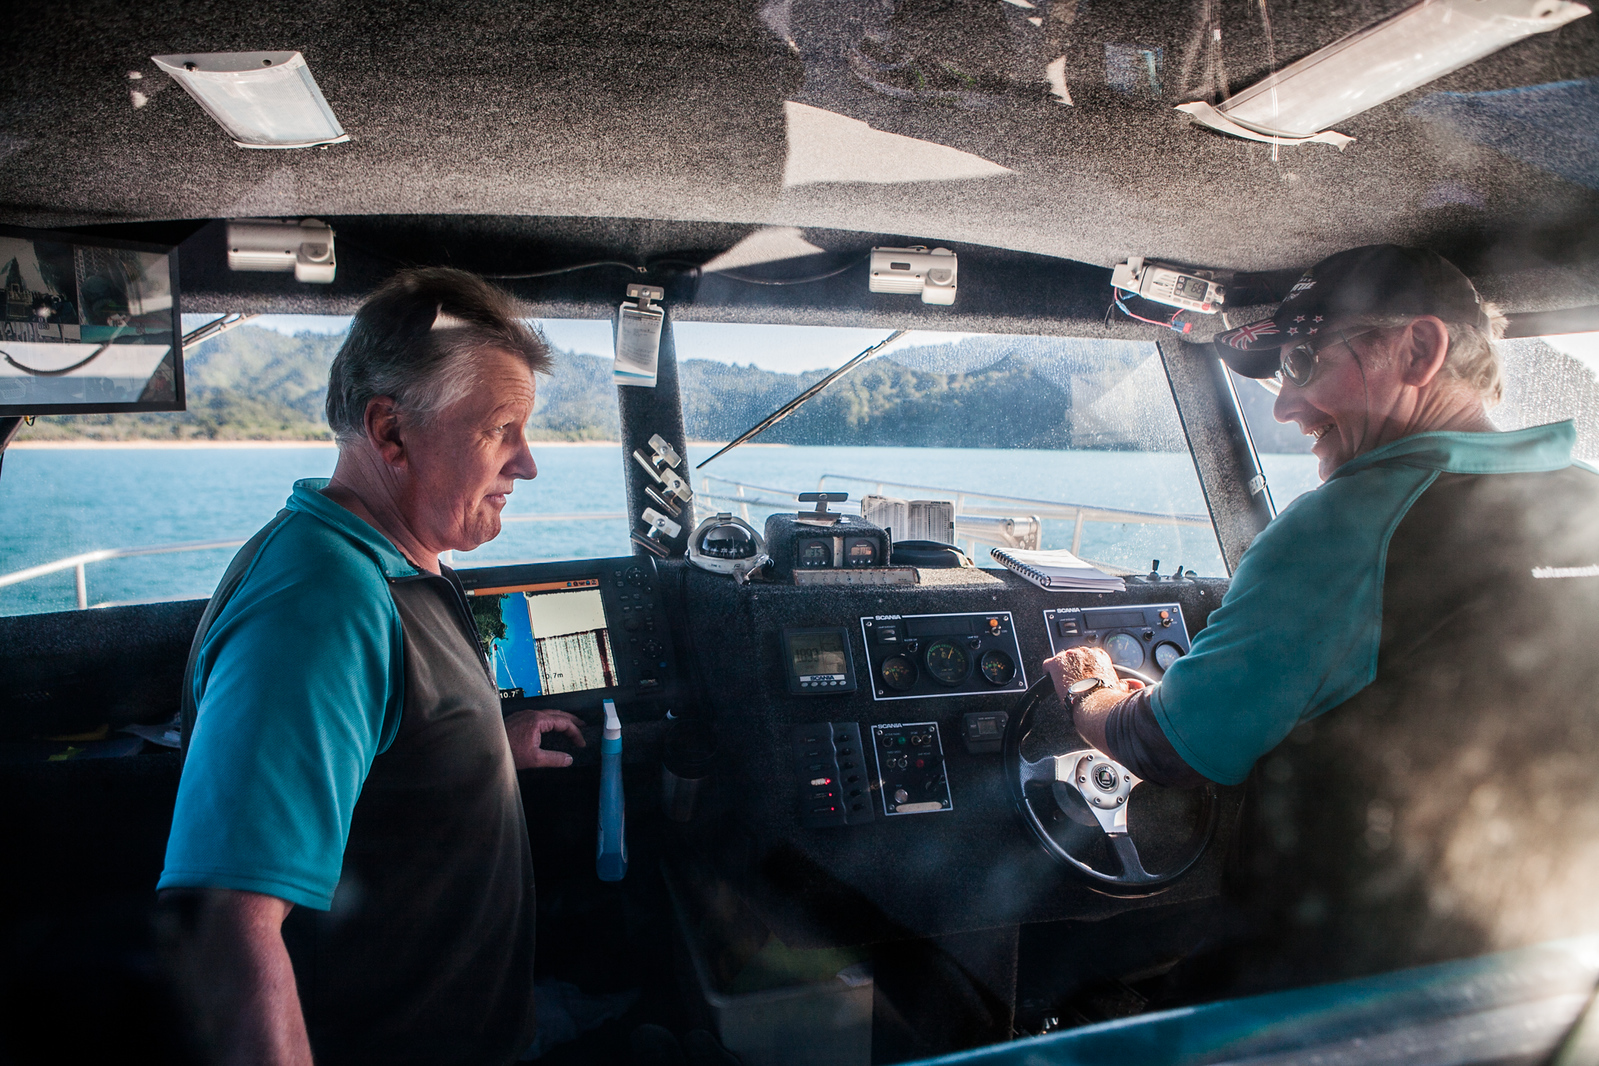 Captains of our sea shuttle discussing the weather conditions in Abel Tasman National Park, New Zealand